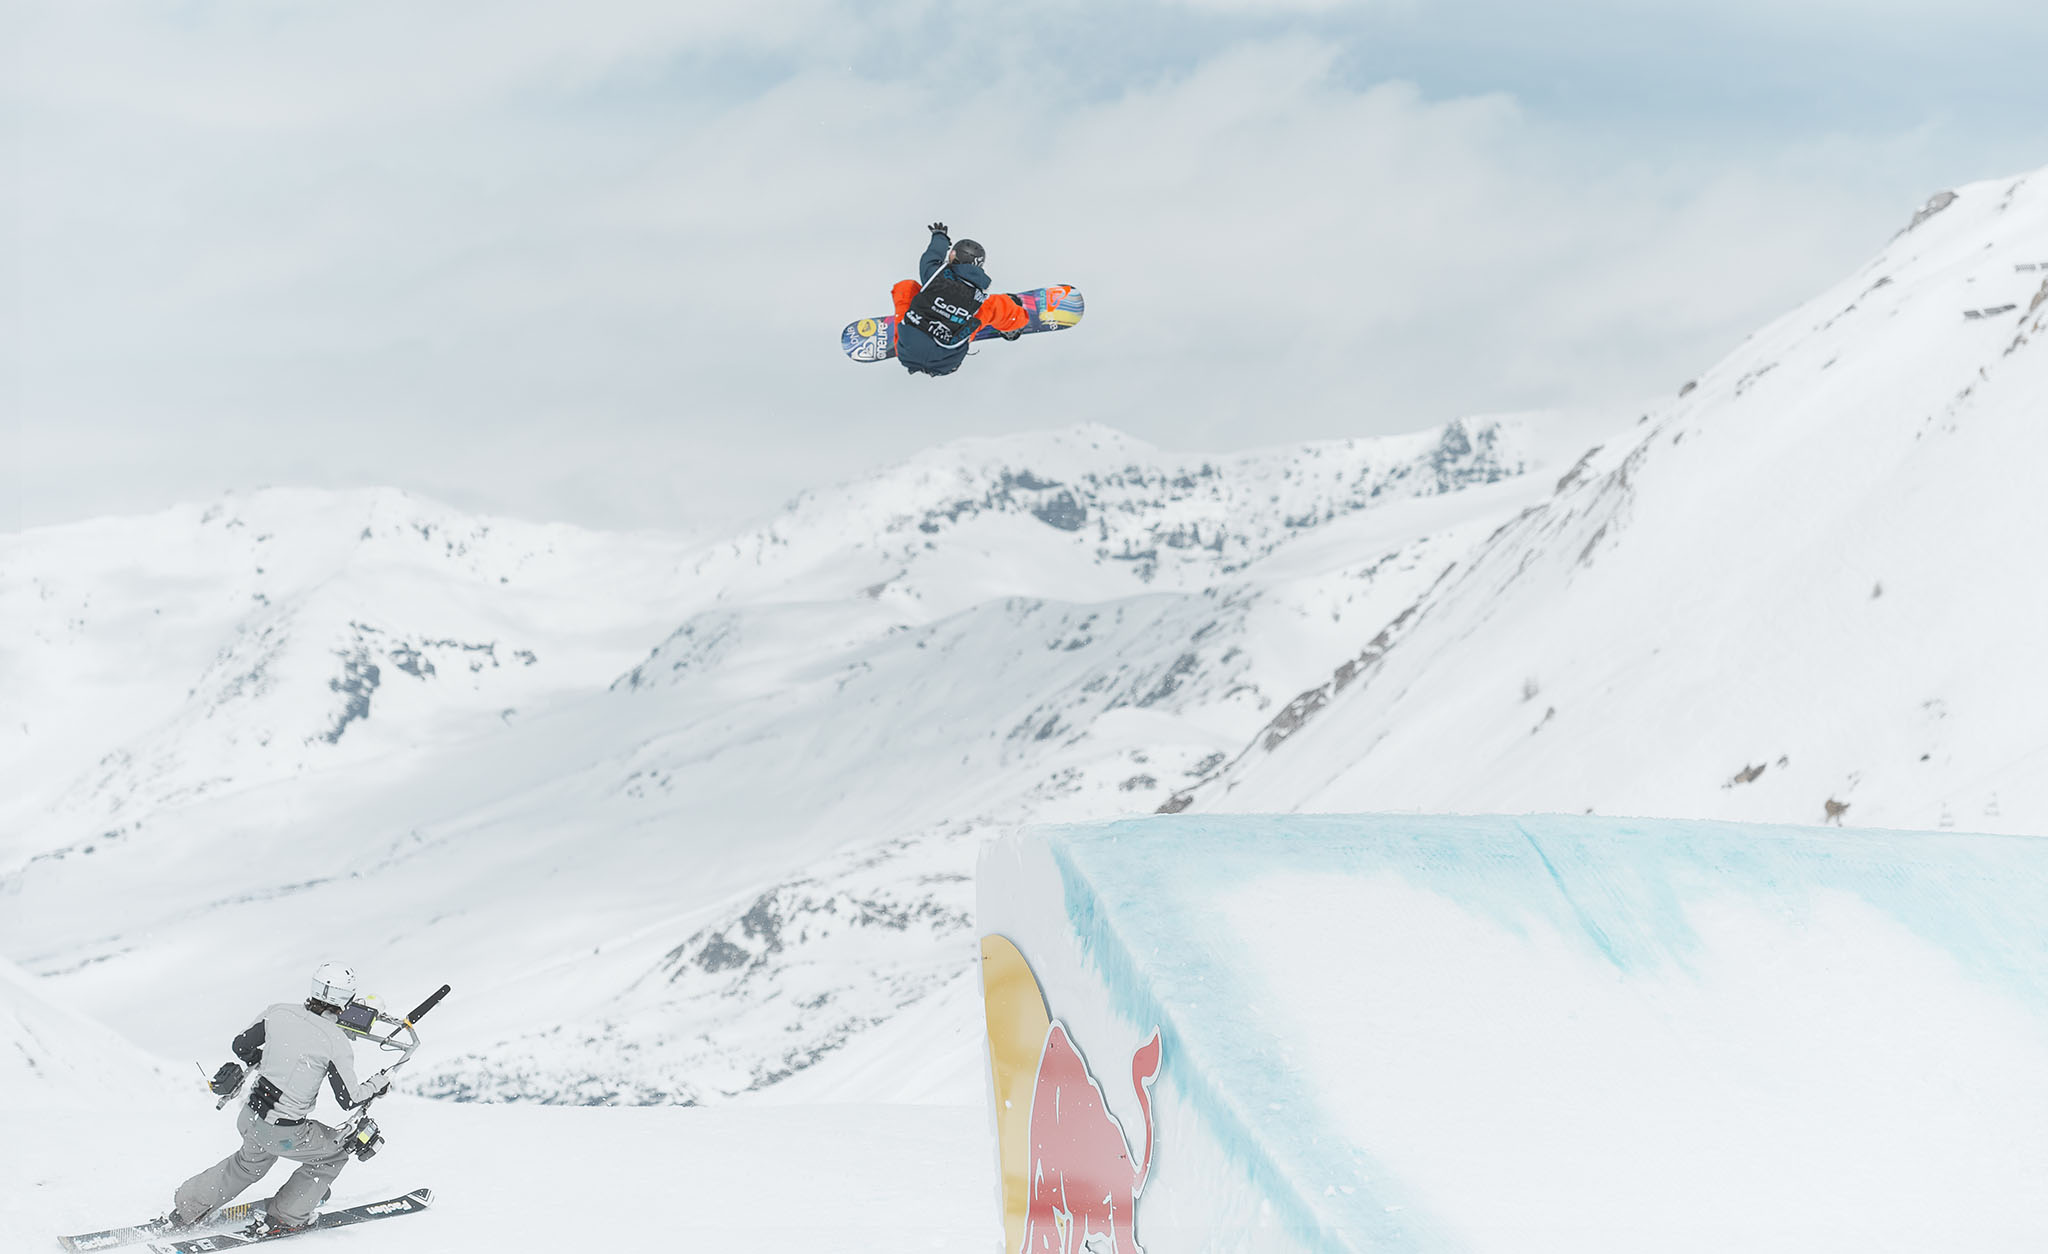 Despite the 12-year age difference between she and gold medalist Silje Norendal, Buass still secured Women's Snowboard Slopestyle bronze at X Games Tignes 2013. She began competing at X Games in 2002, in Women's Snowboard SuperPipe.